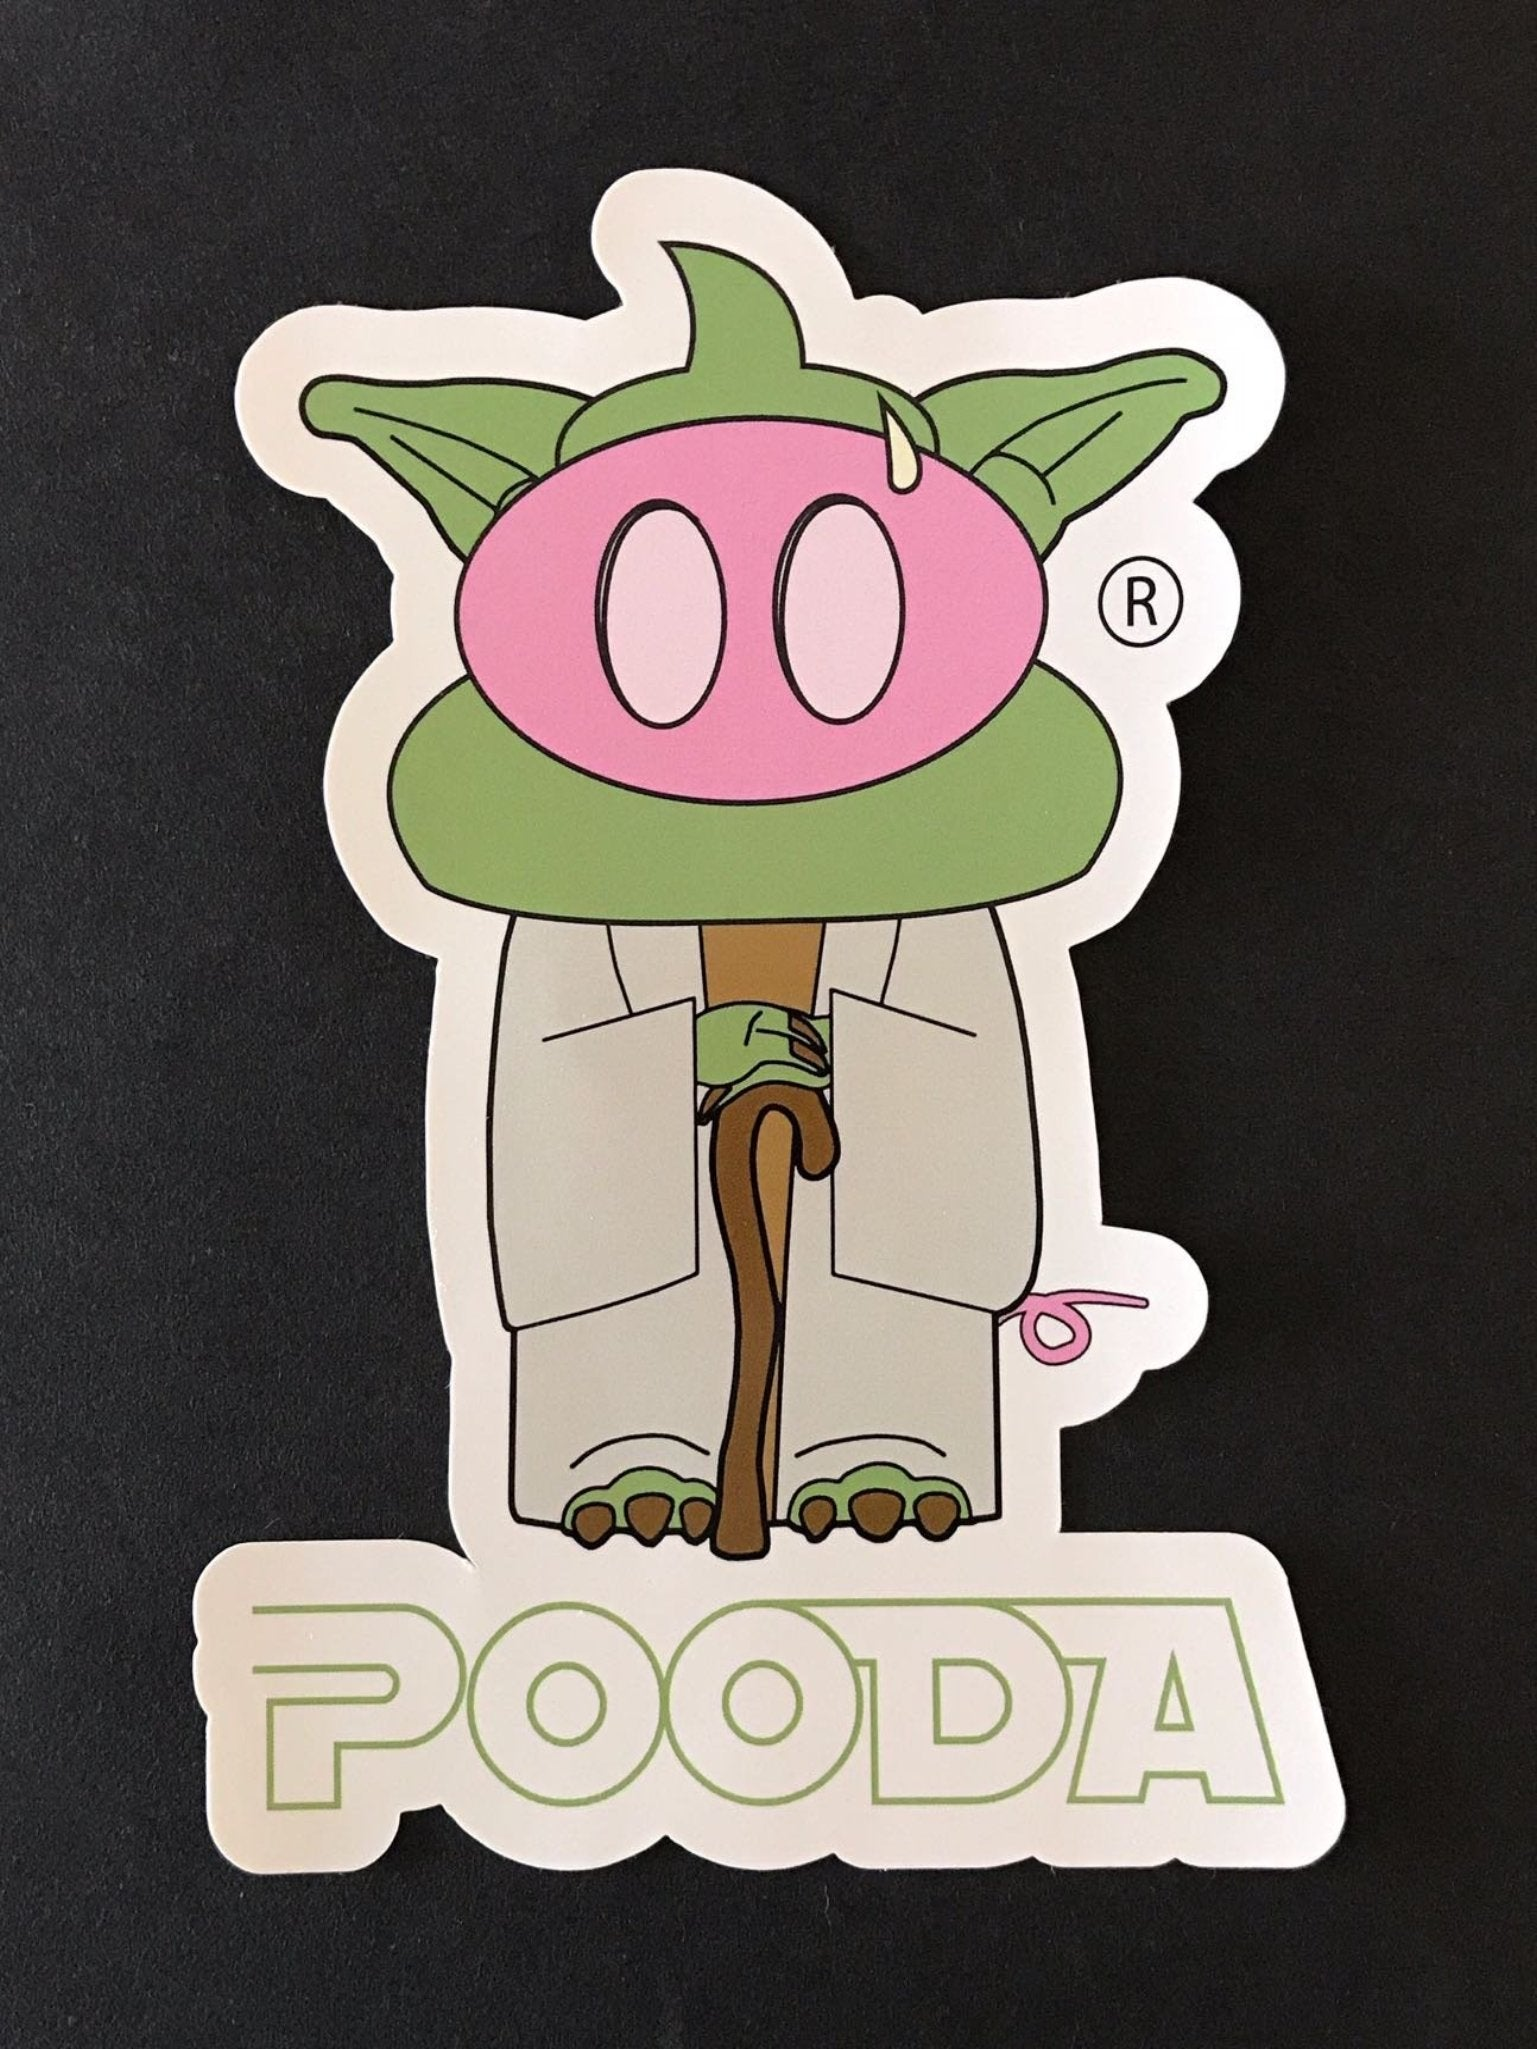 The Pooda Sticker